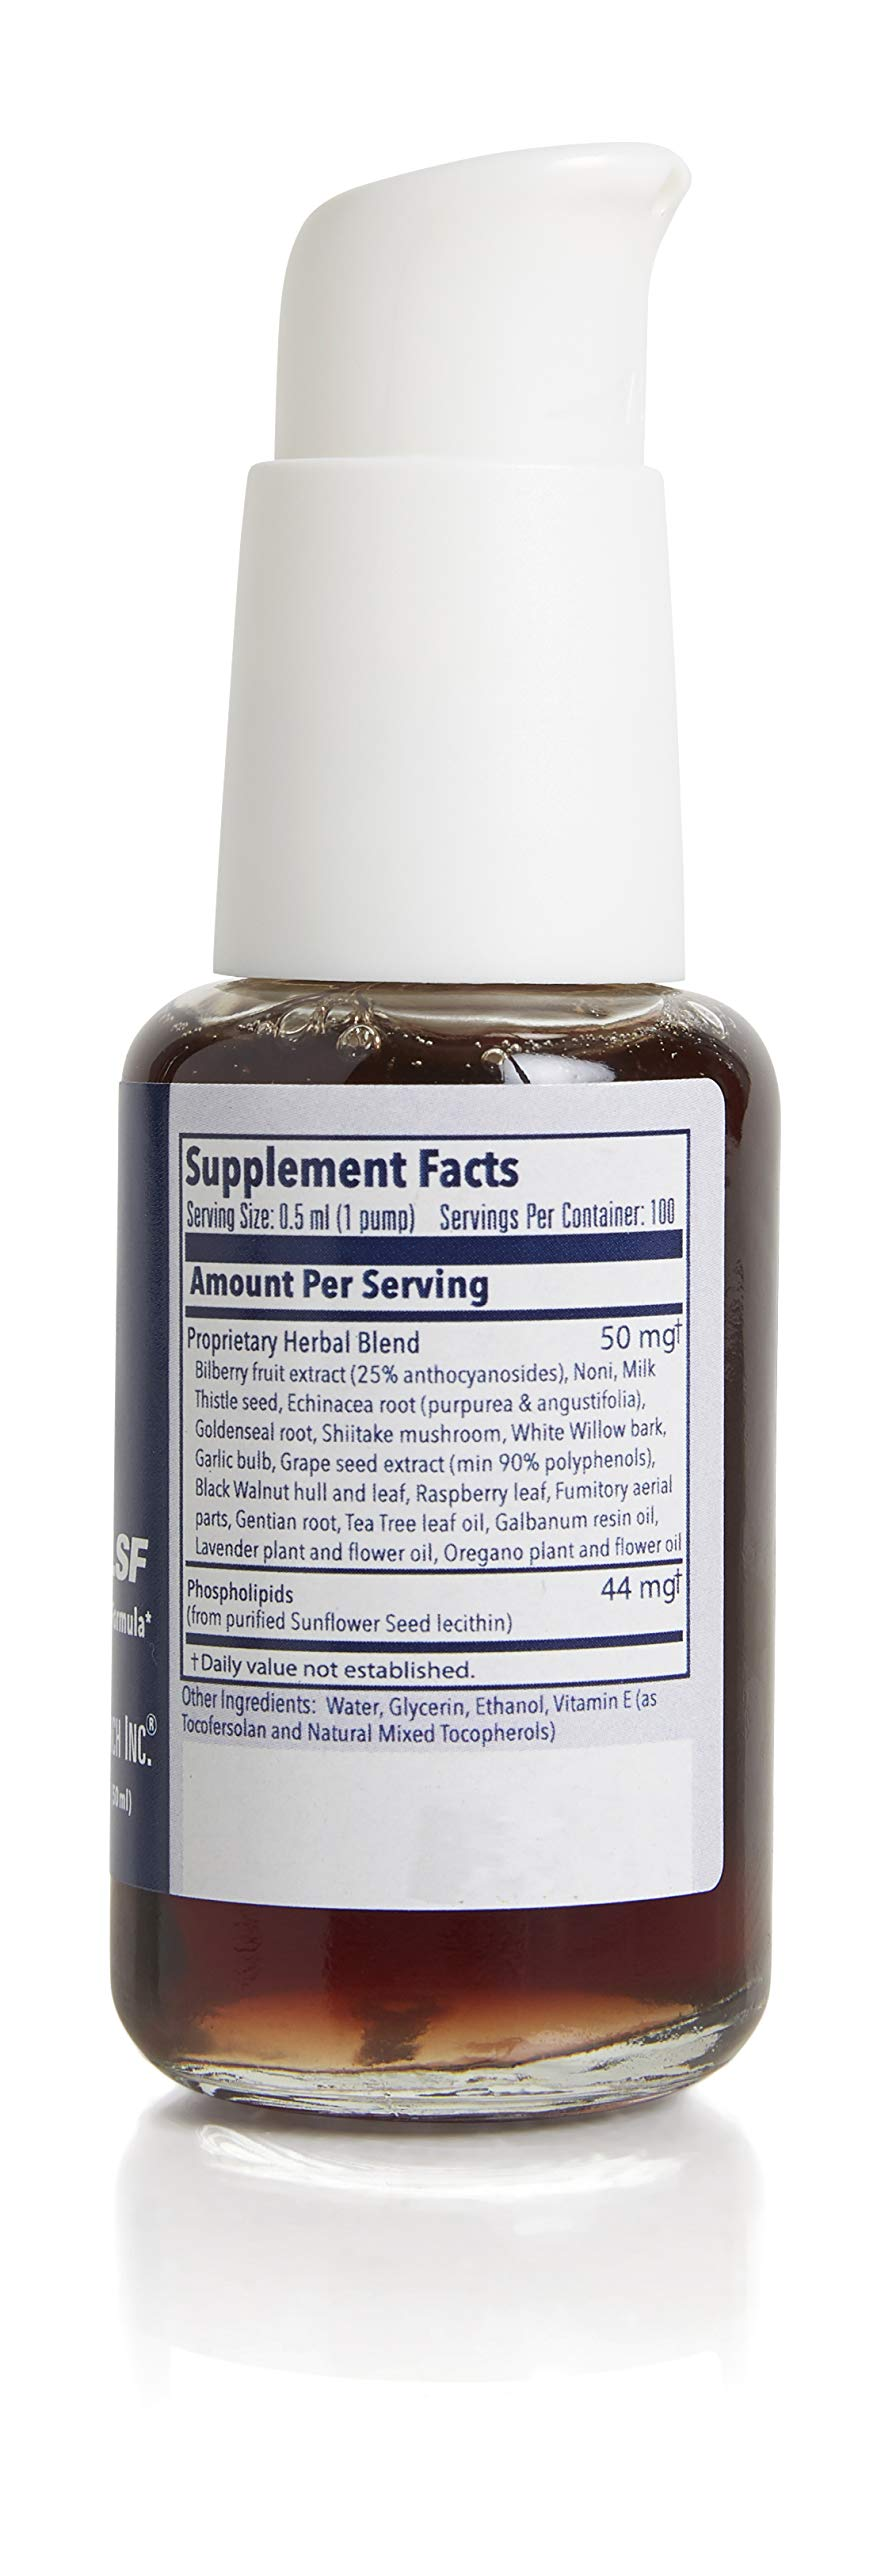 Bio-Botanical Research Biocidin LSF, Potent Broad-Spectrum Liposomal Formula, 1.7oz by Bio-Botanical Research (Image #2)